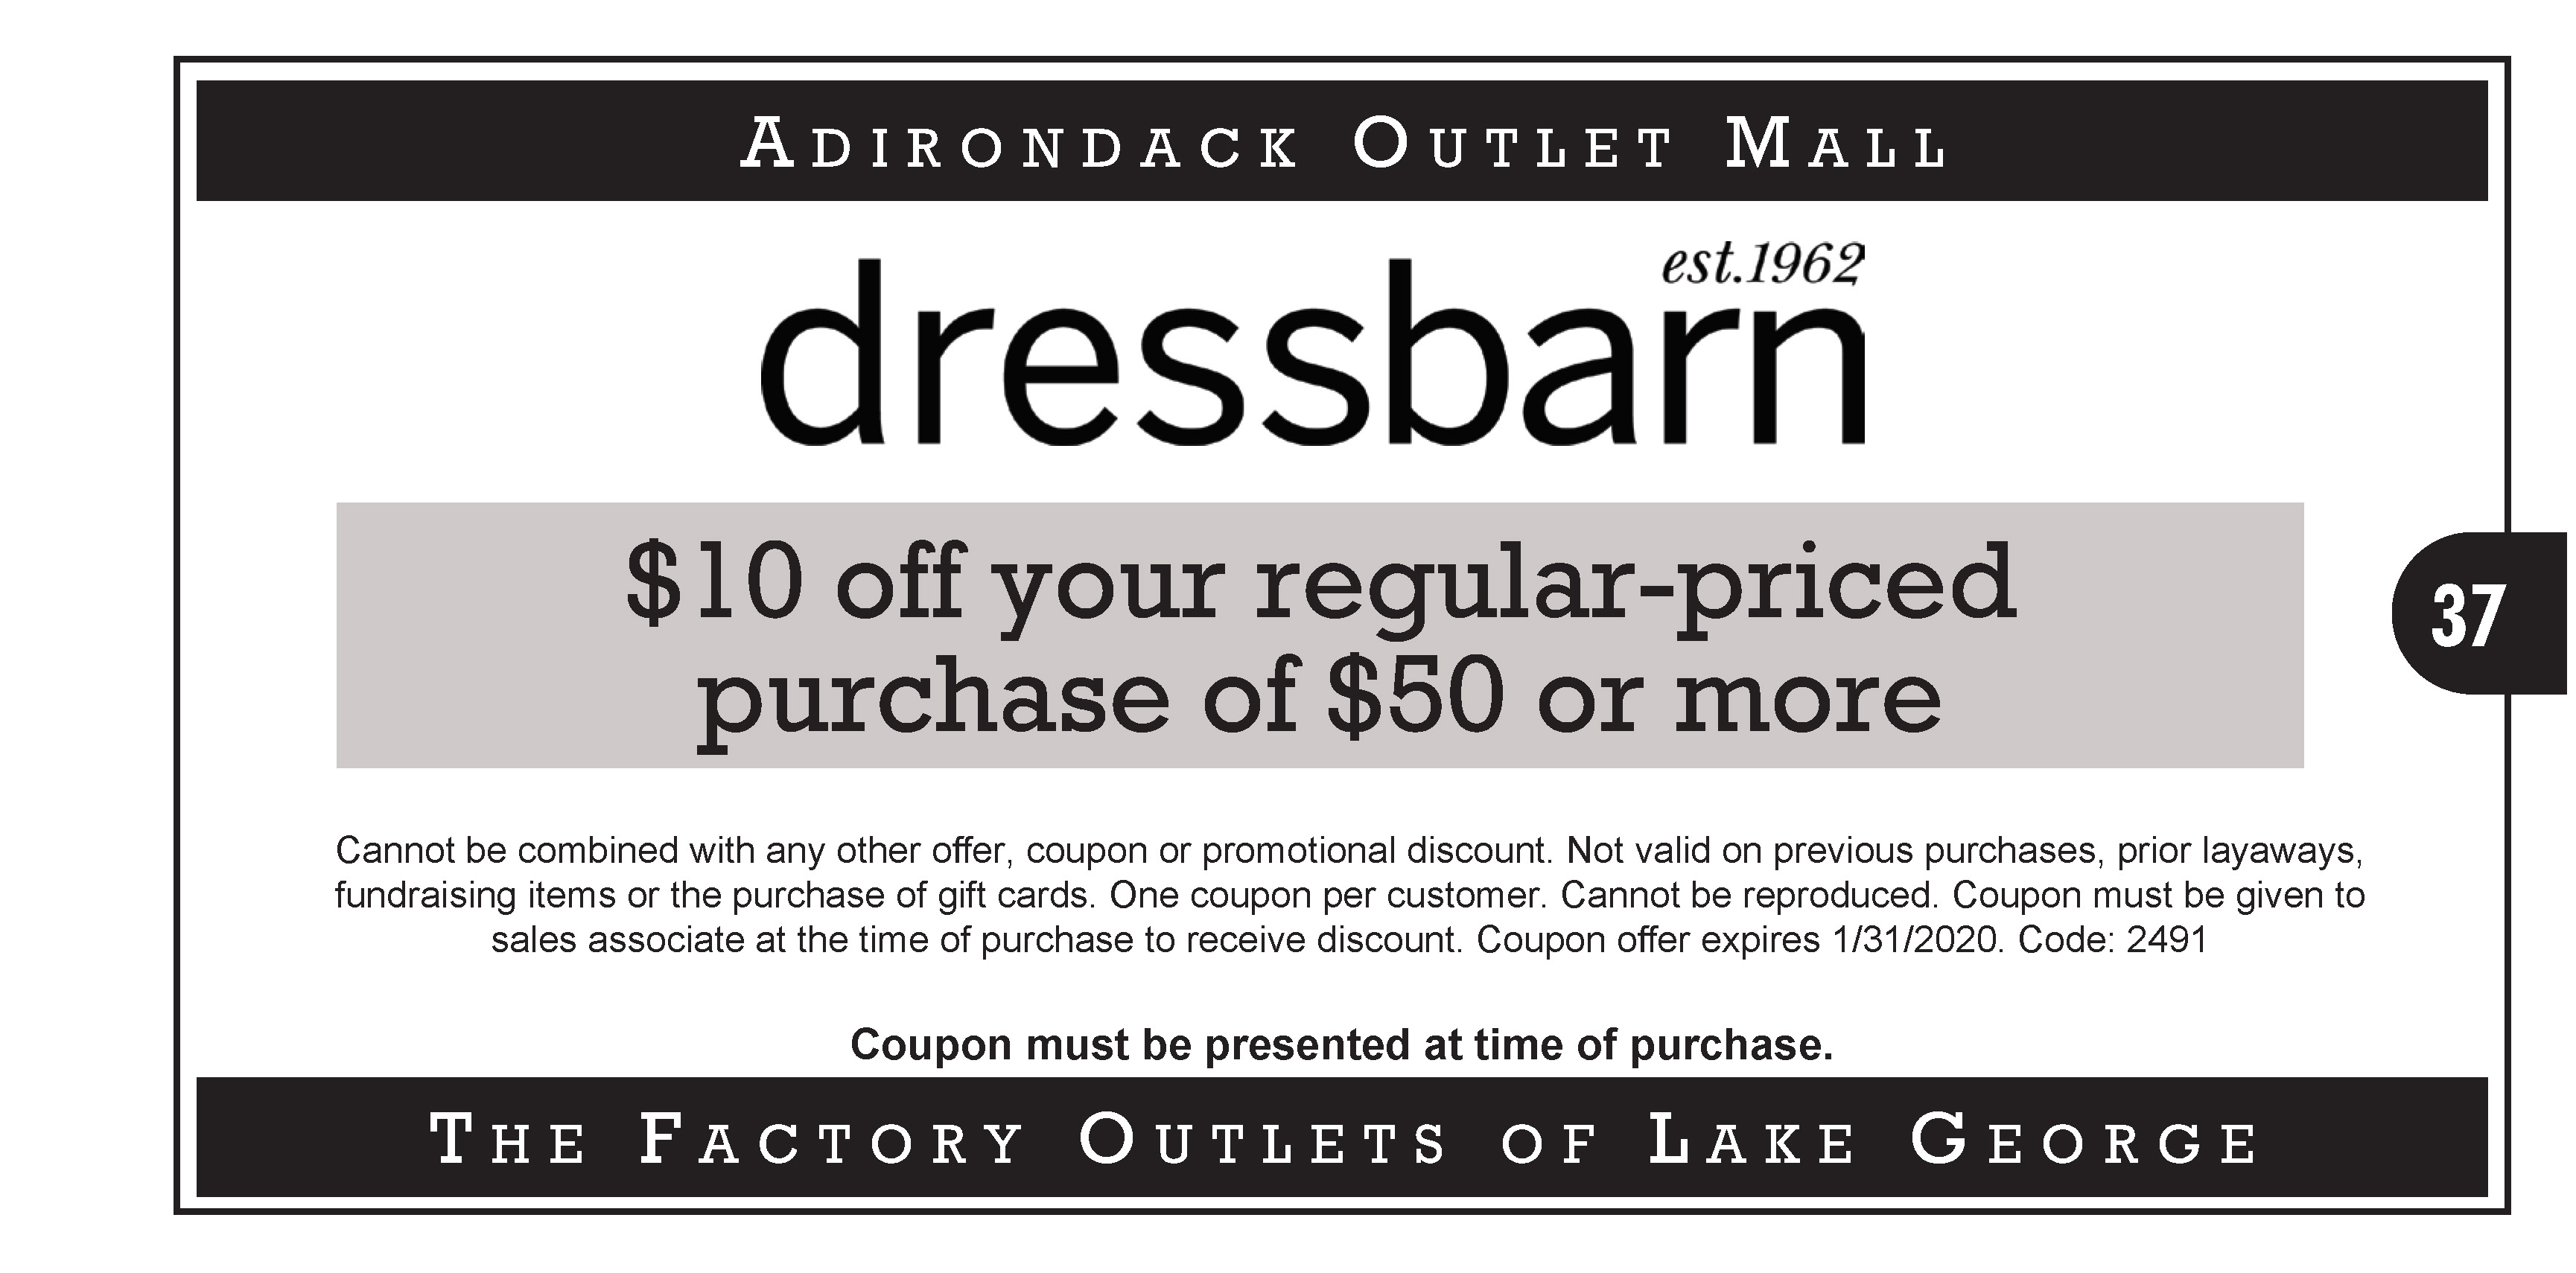 2019 Coupons – French Mountain Commons and Log Jam Outlet